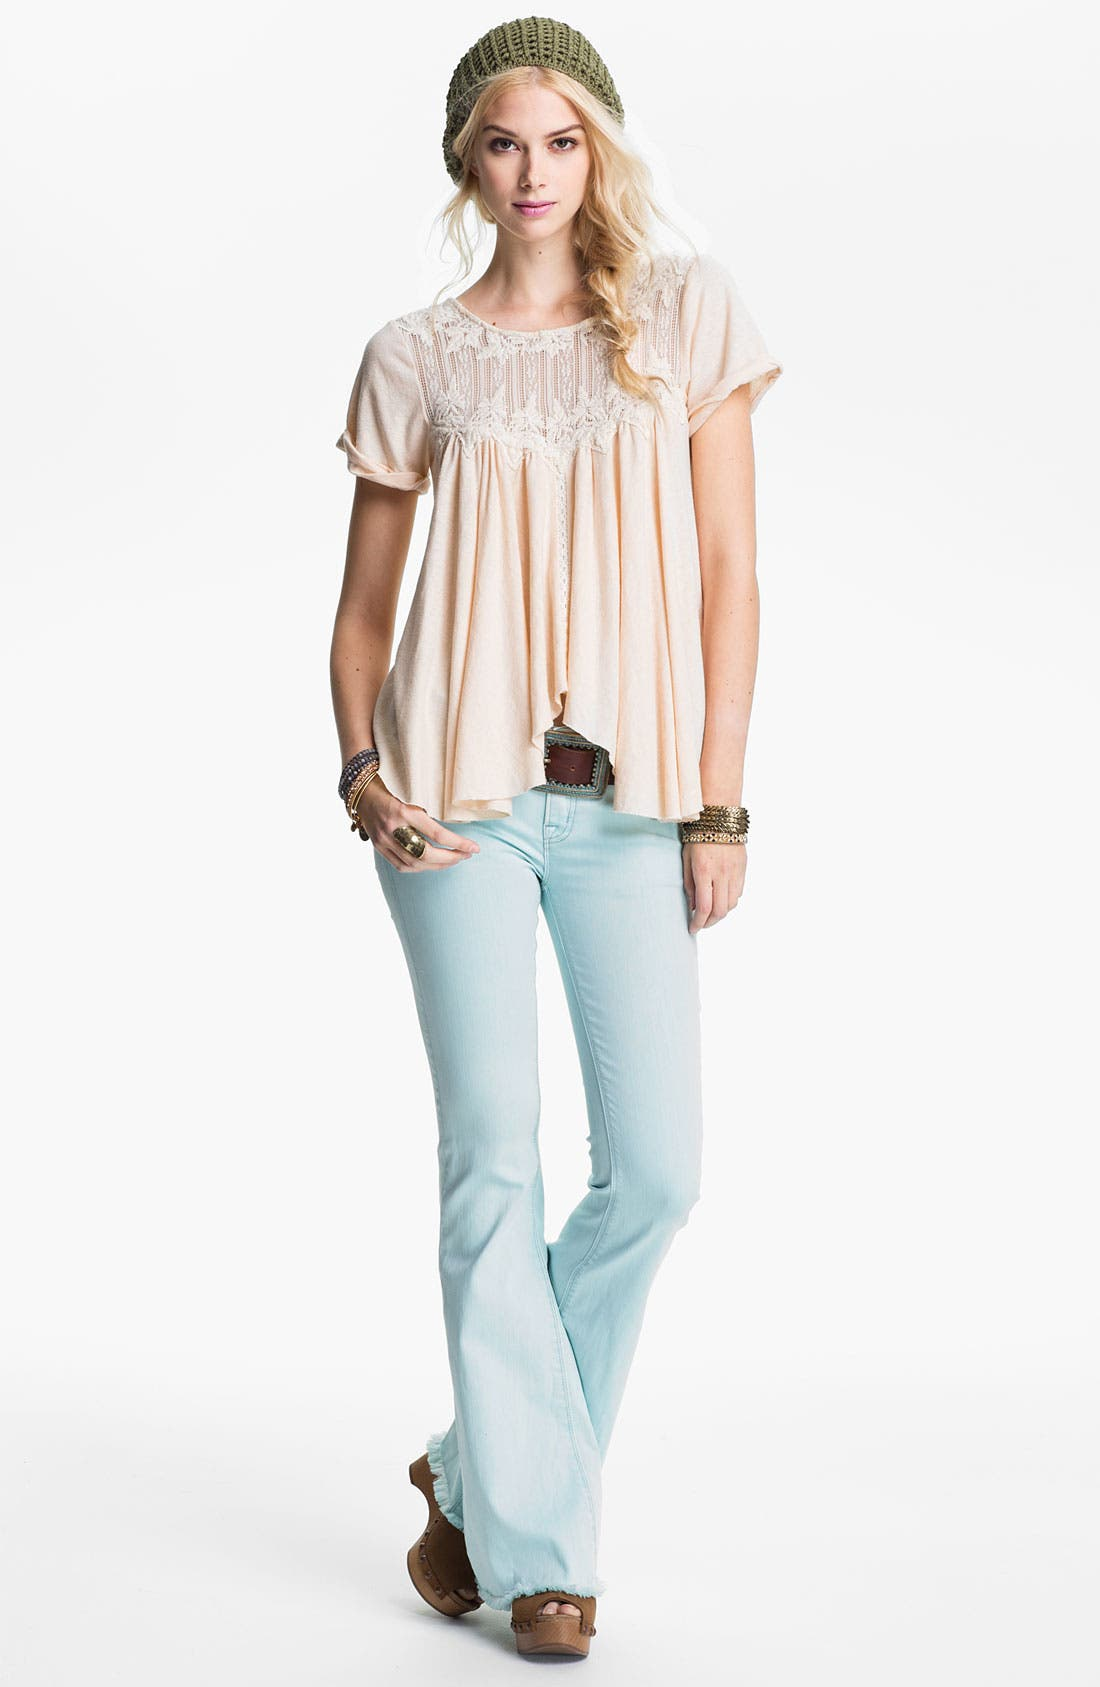 Alternate Image 1 Selected - Free People Top & Jeans